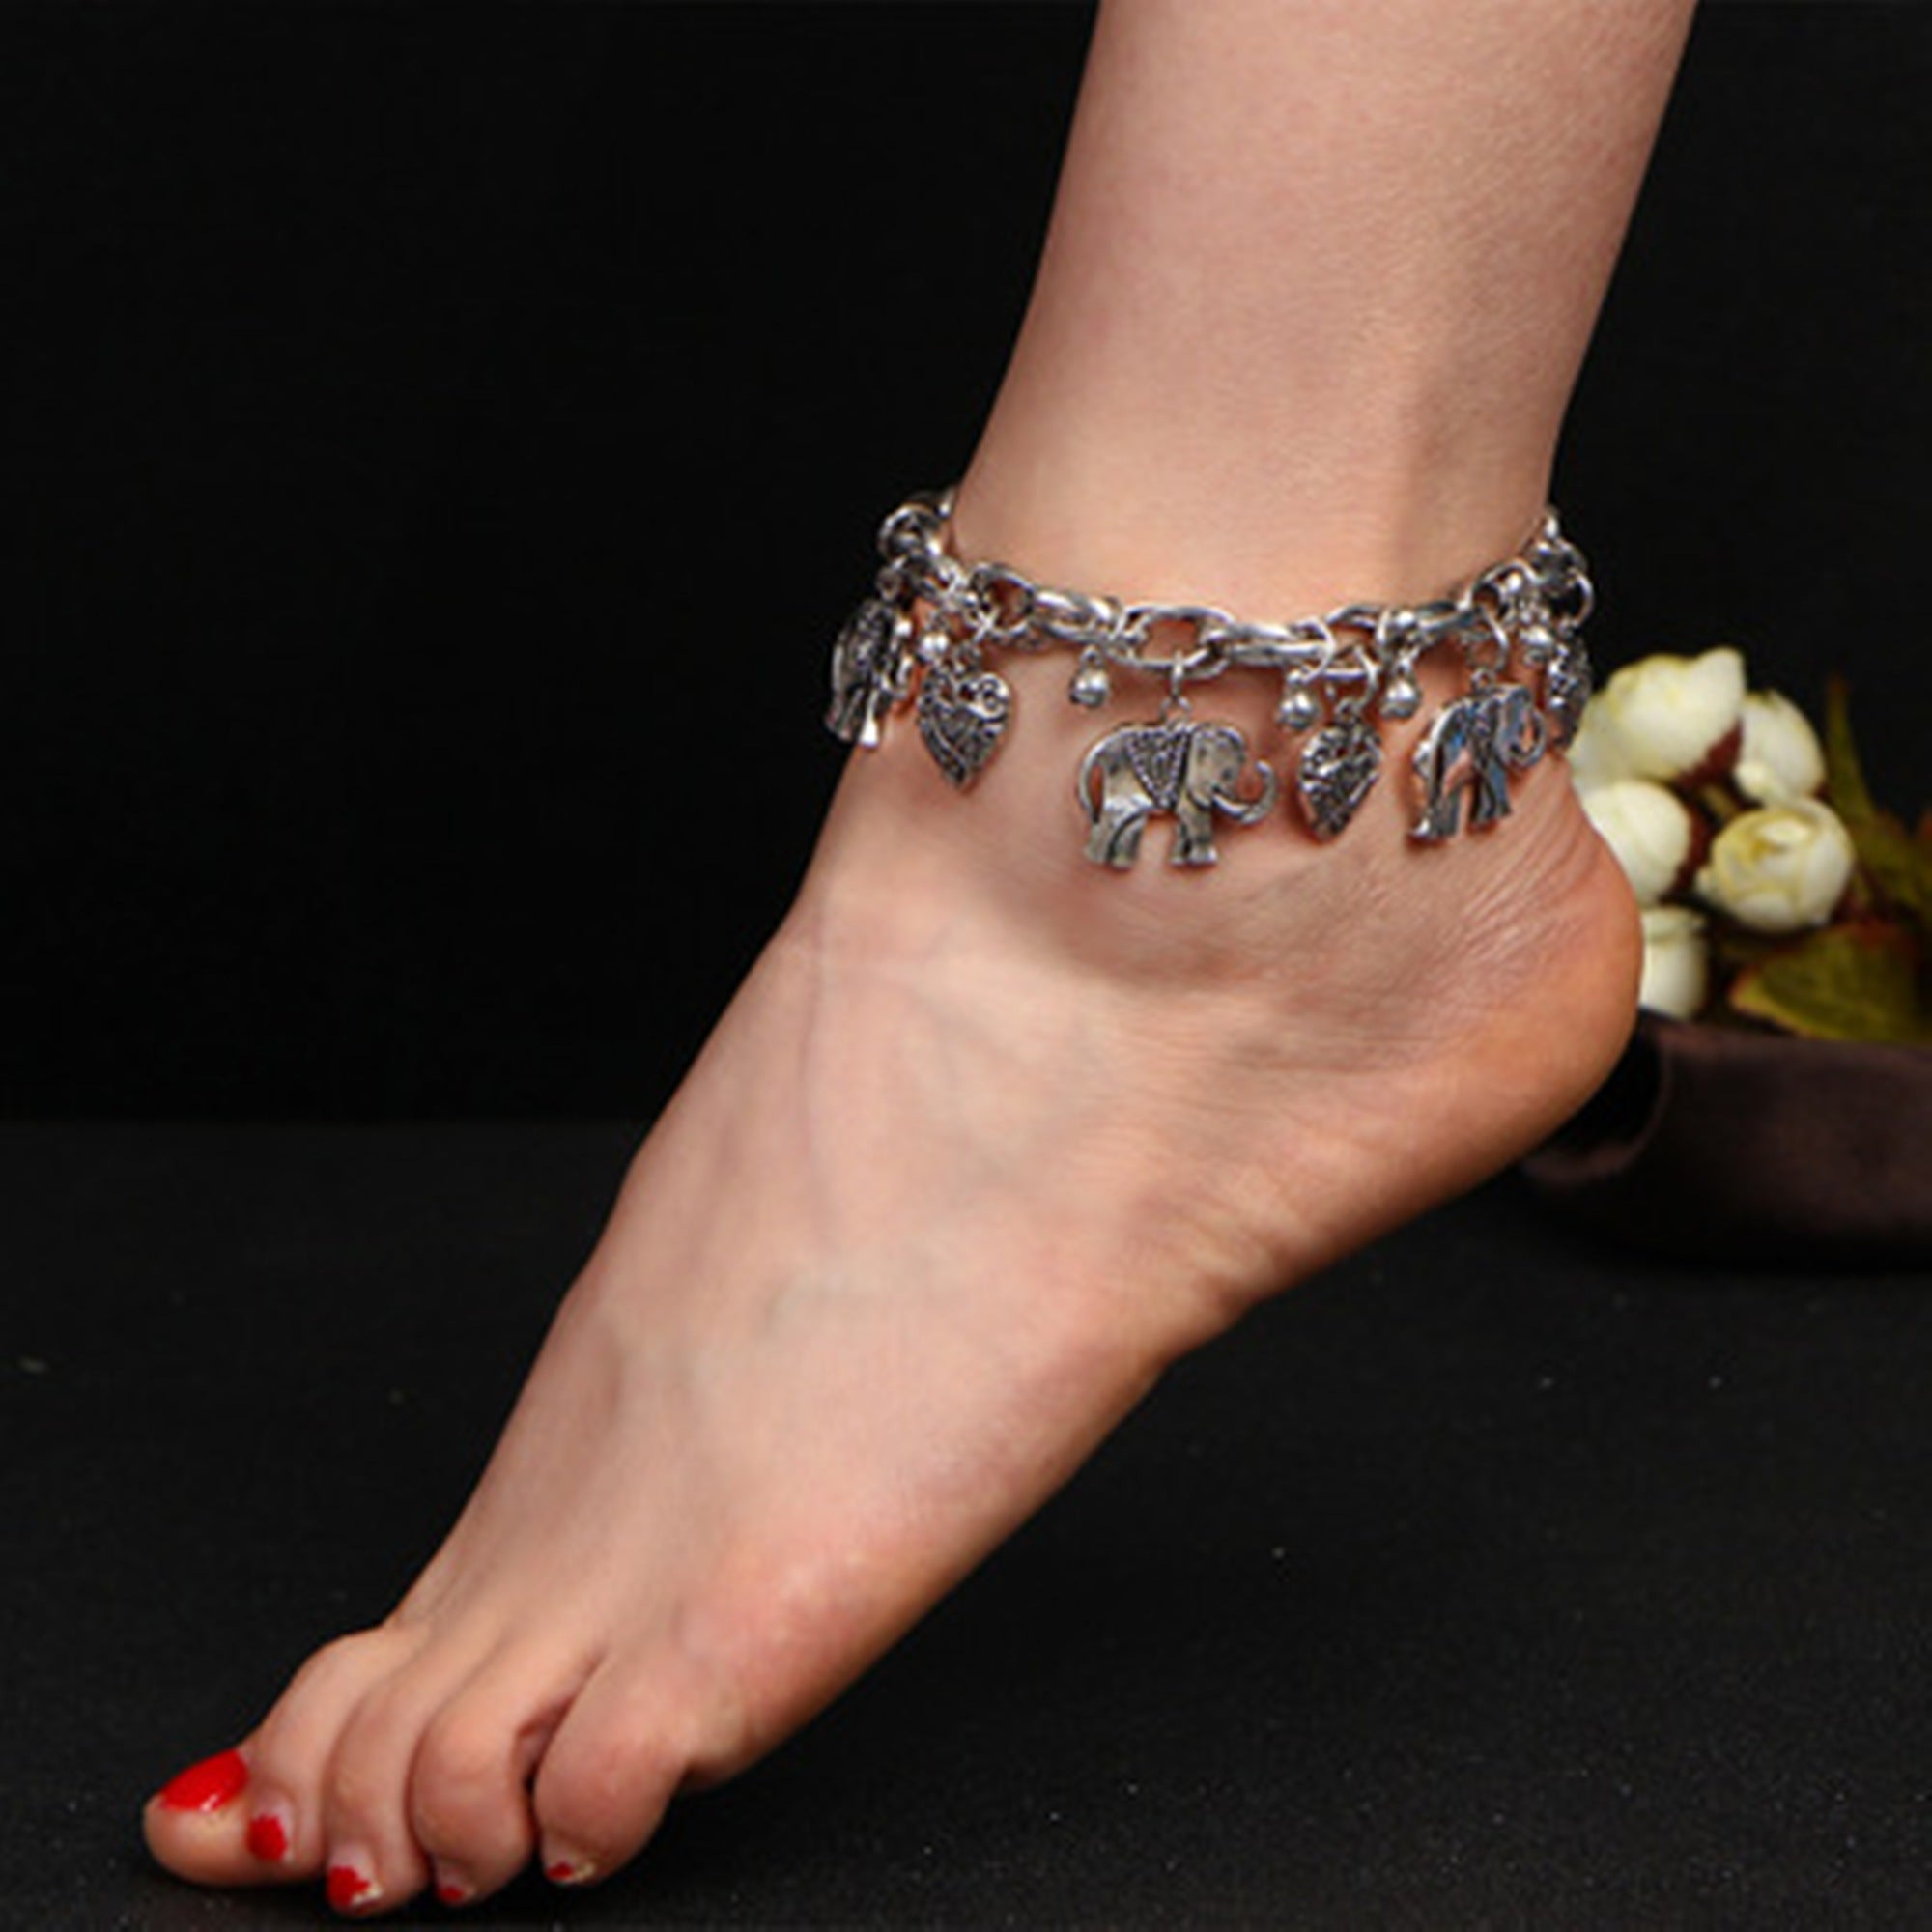 anklets silver where gold scorpion color i bracelets boot sexy product foot buy g beach anklet new store can ankle chain for bracelet jewelry wholesale women